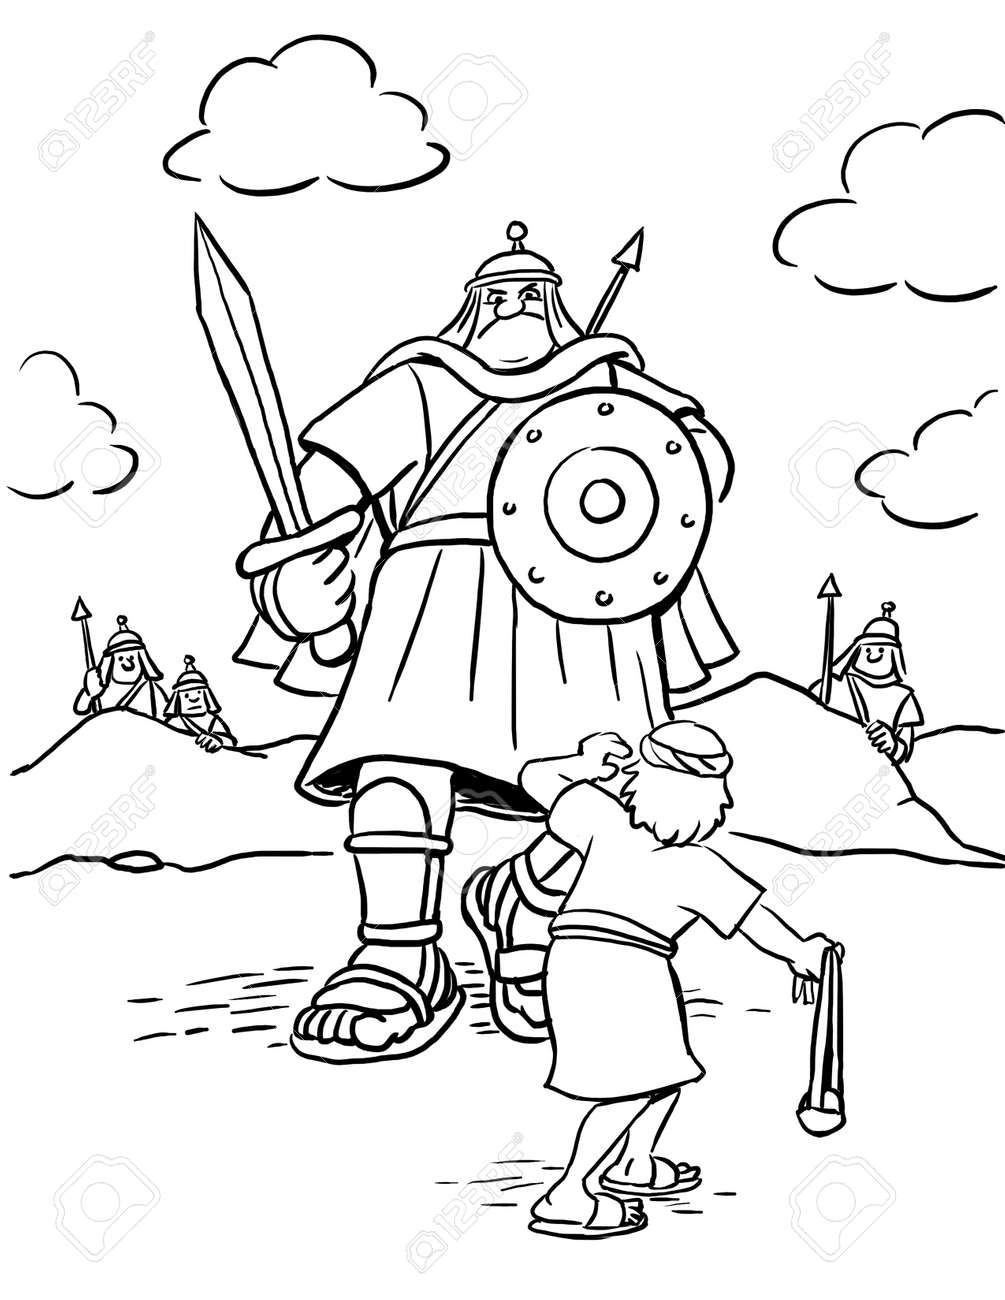 Coloring Page Of David And Goliath Stock Photo Picture And Royalty Free Image Image 126584235